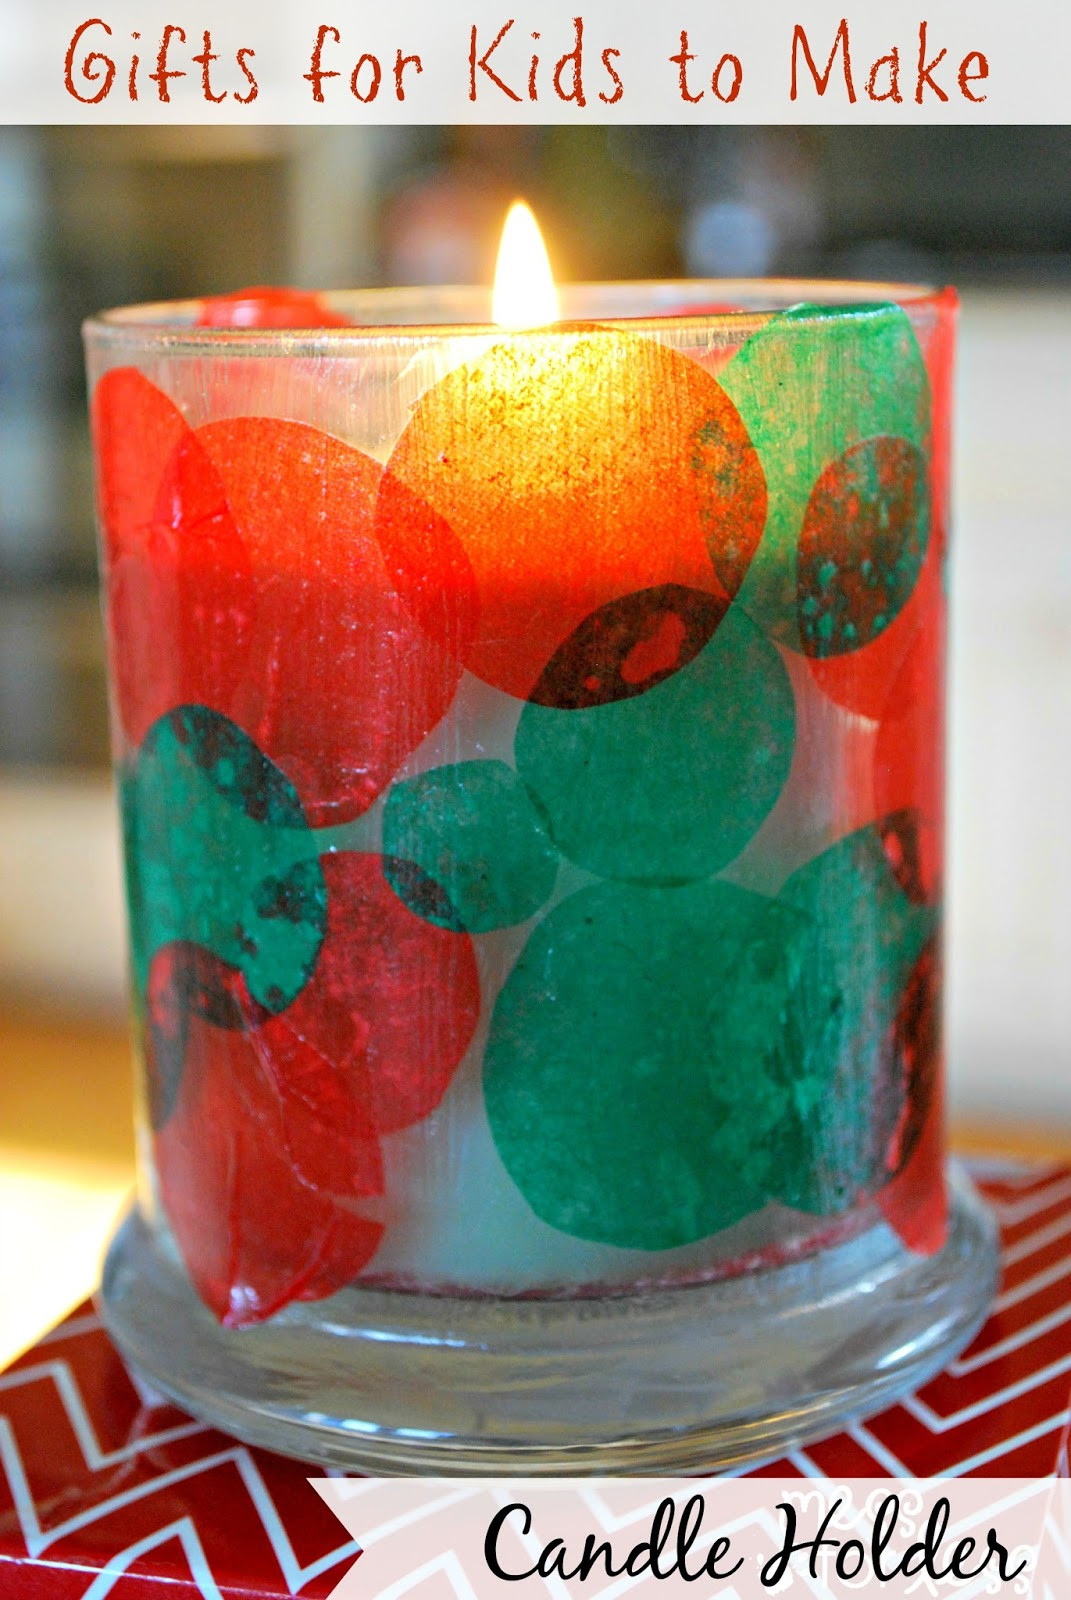 Best ideas about Kids Christmas Craft Gifts . Save or Pin Kids Christmas Craft Candle Holder Mess for Less Now.